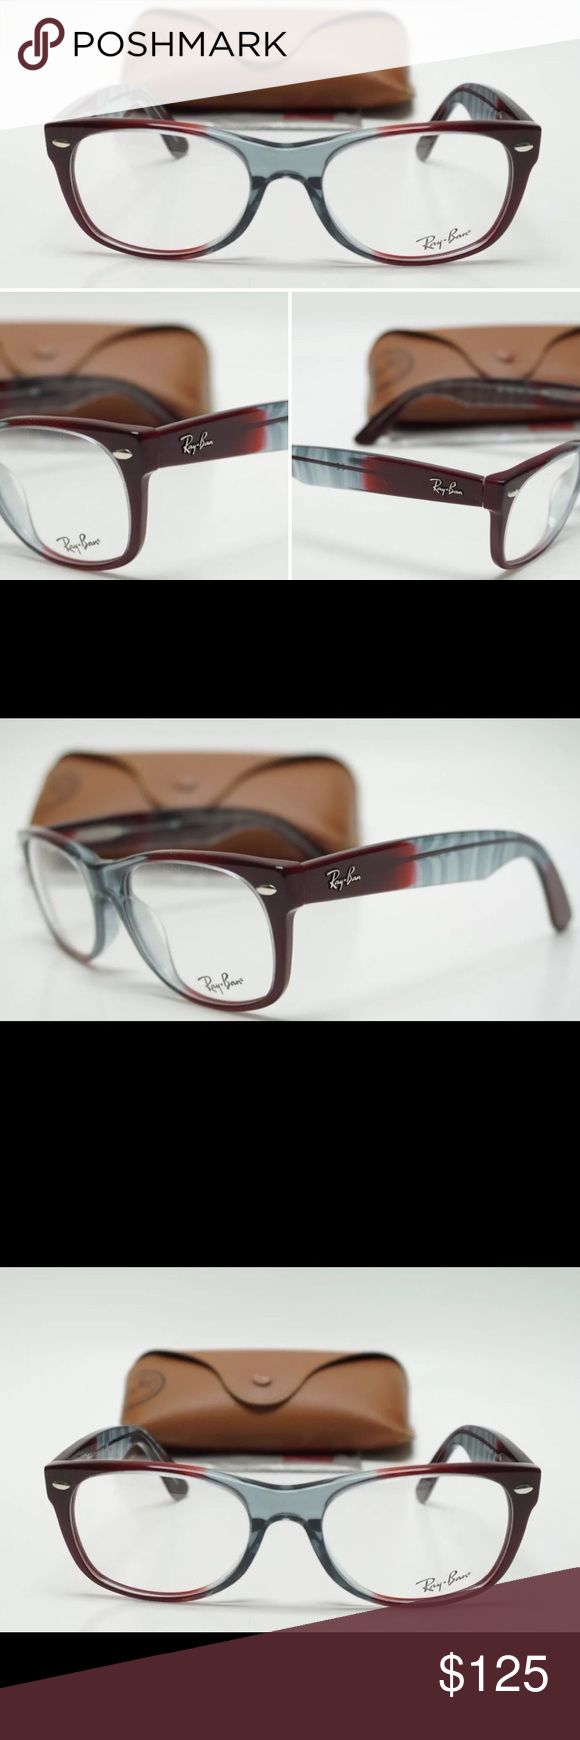 RAY-BAN RB5184 WAYFARER OPTICS UNISEX NON RX (NEW) Full Rim Unisex Frame RB5184 New Wayfarer Features Silver Metal Accents on the front and Ray-Ban logo in Silver on the temples; 1  Frame Size: 52-18-145.  Store Display Models.  Frames are still with demo lenses in them the eyeglass frames are in perfect condition with the exception of a few. Tiny dots only noticeable under direct light the lenses have many scratches due to storage  Original Protective Carrying Case and Cleaning Cloth…